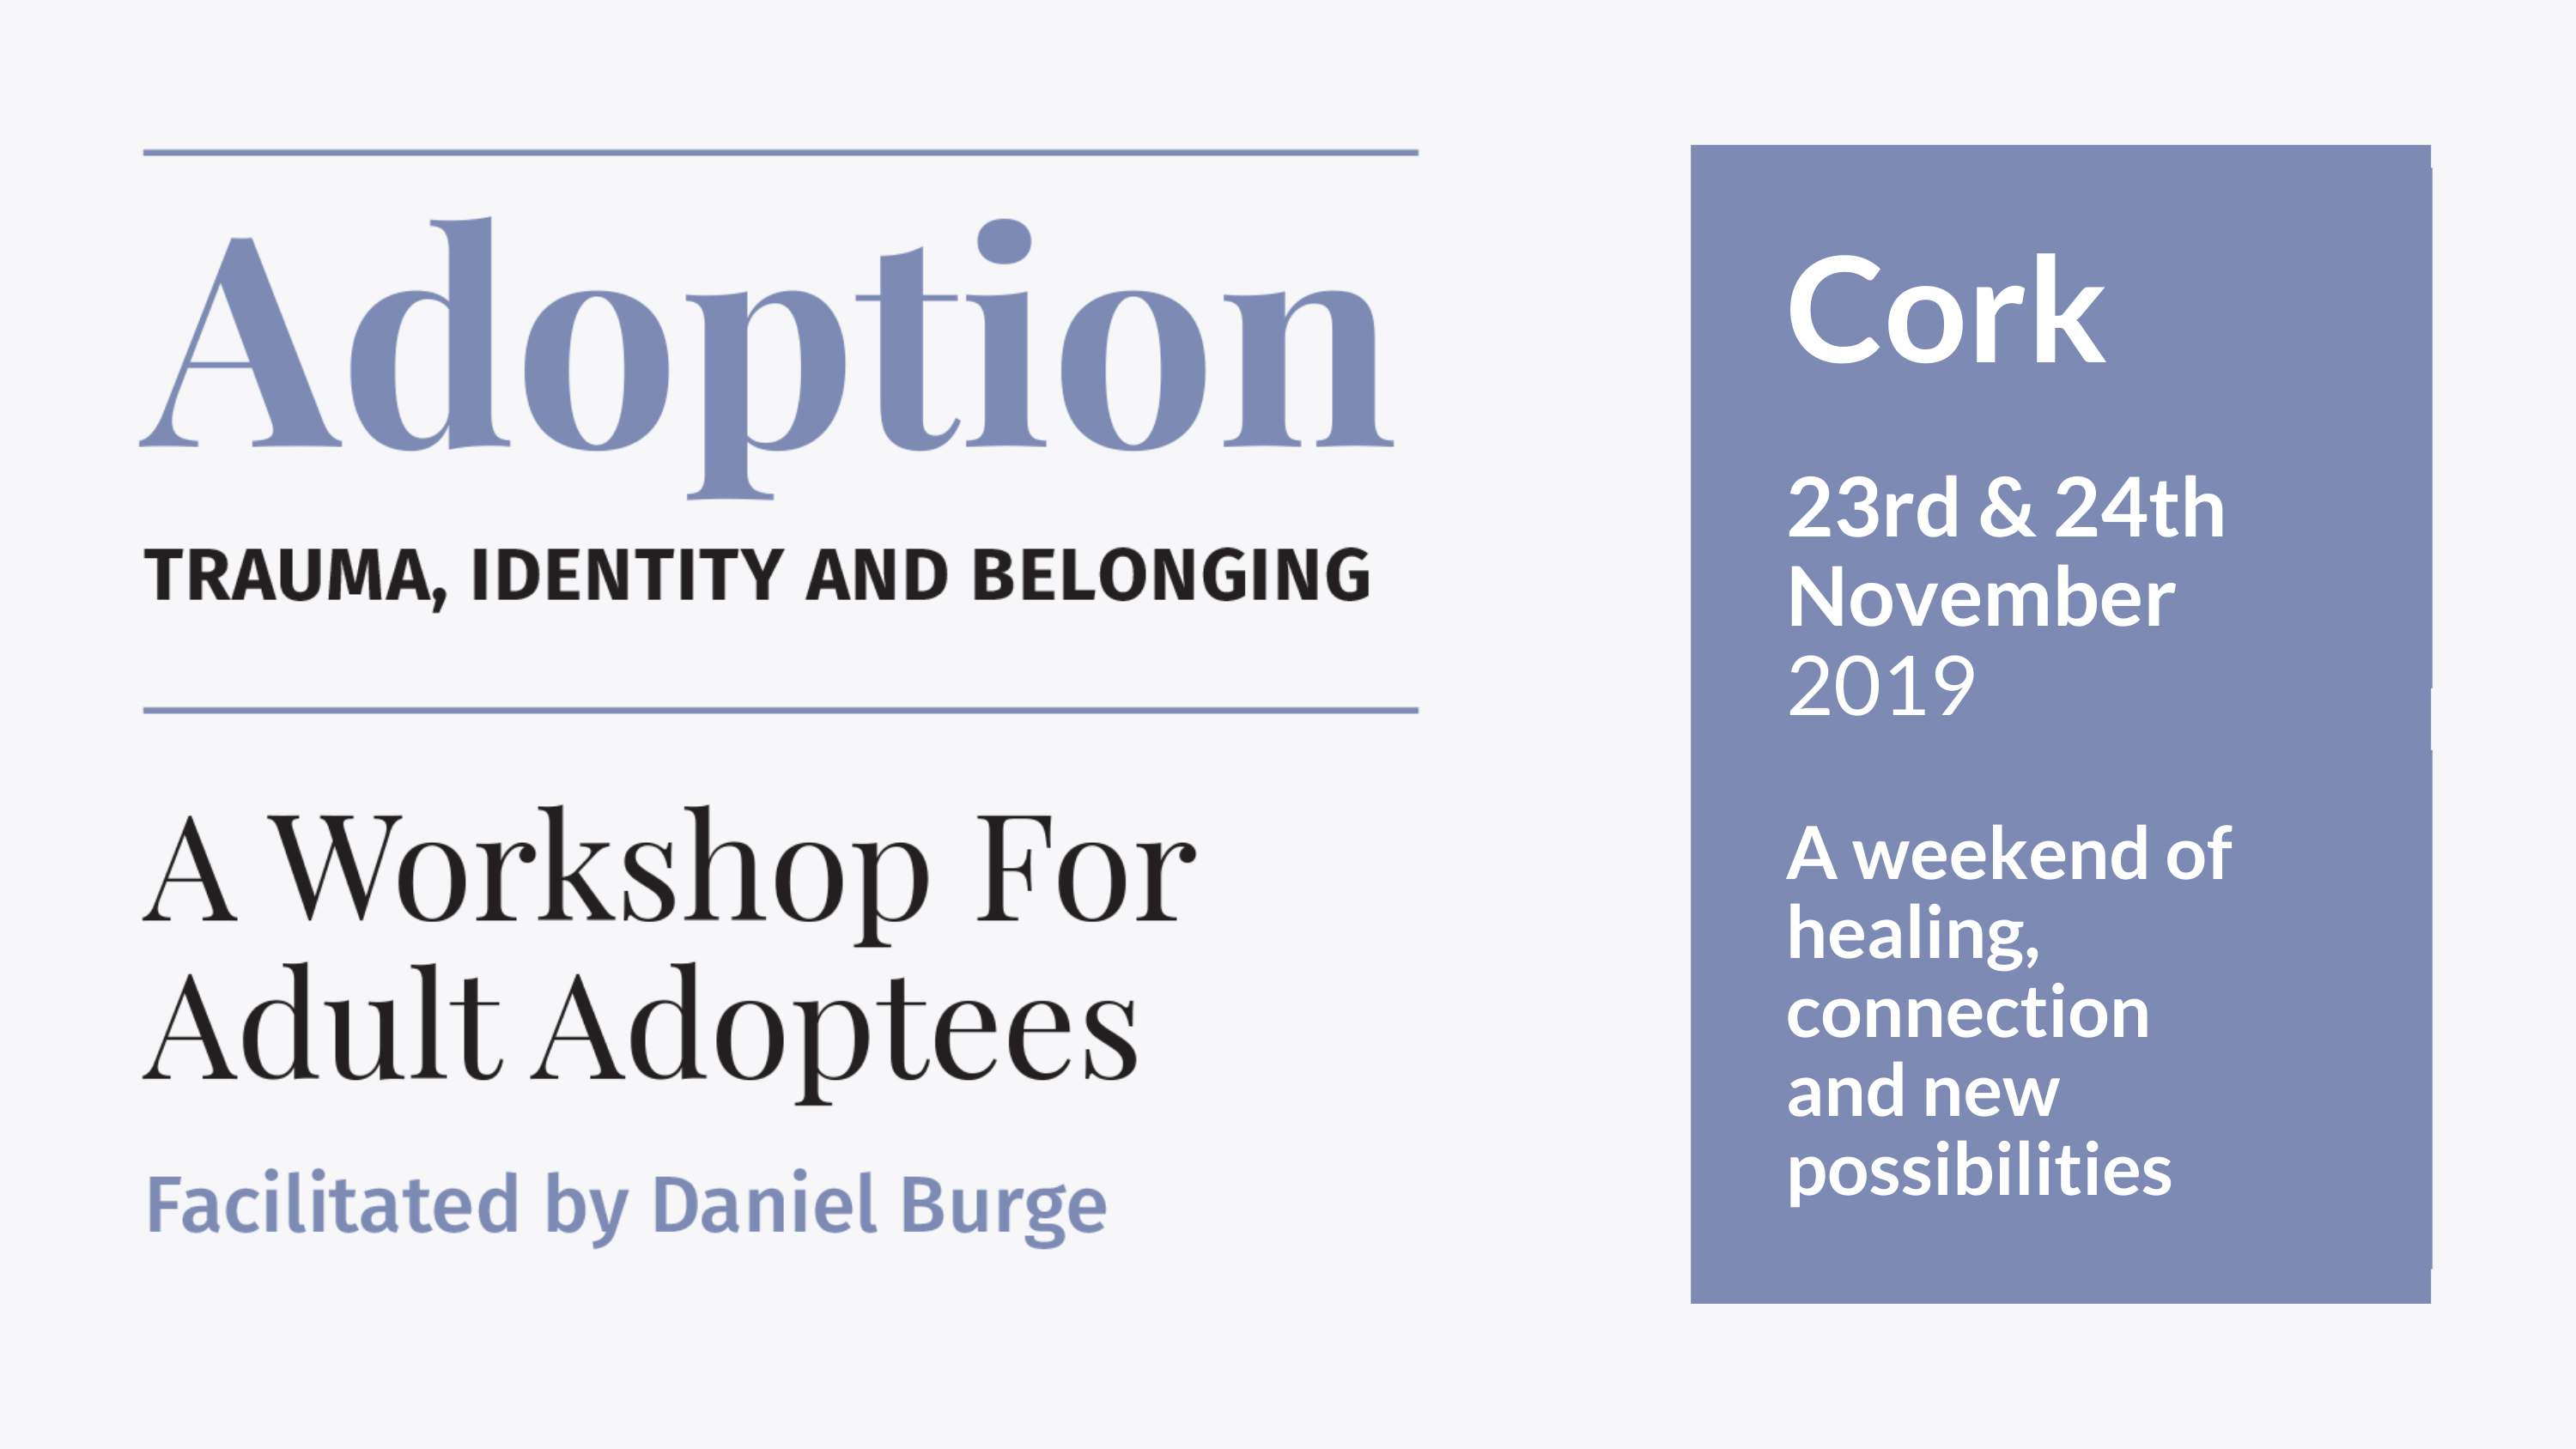 Cork Adoption workshop